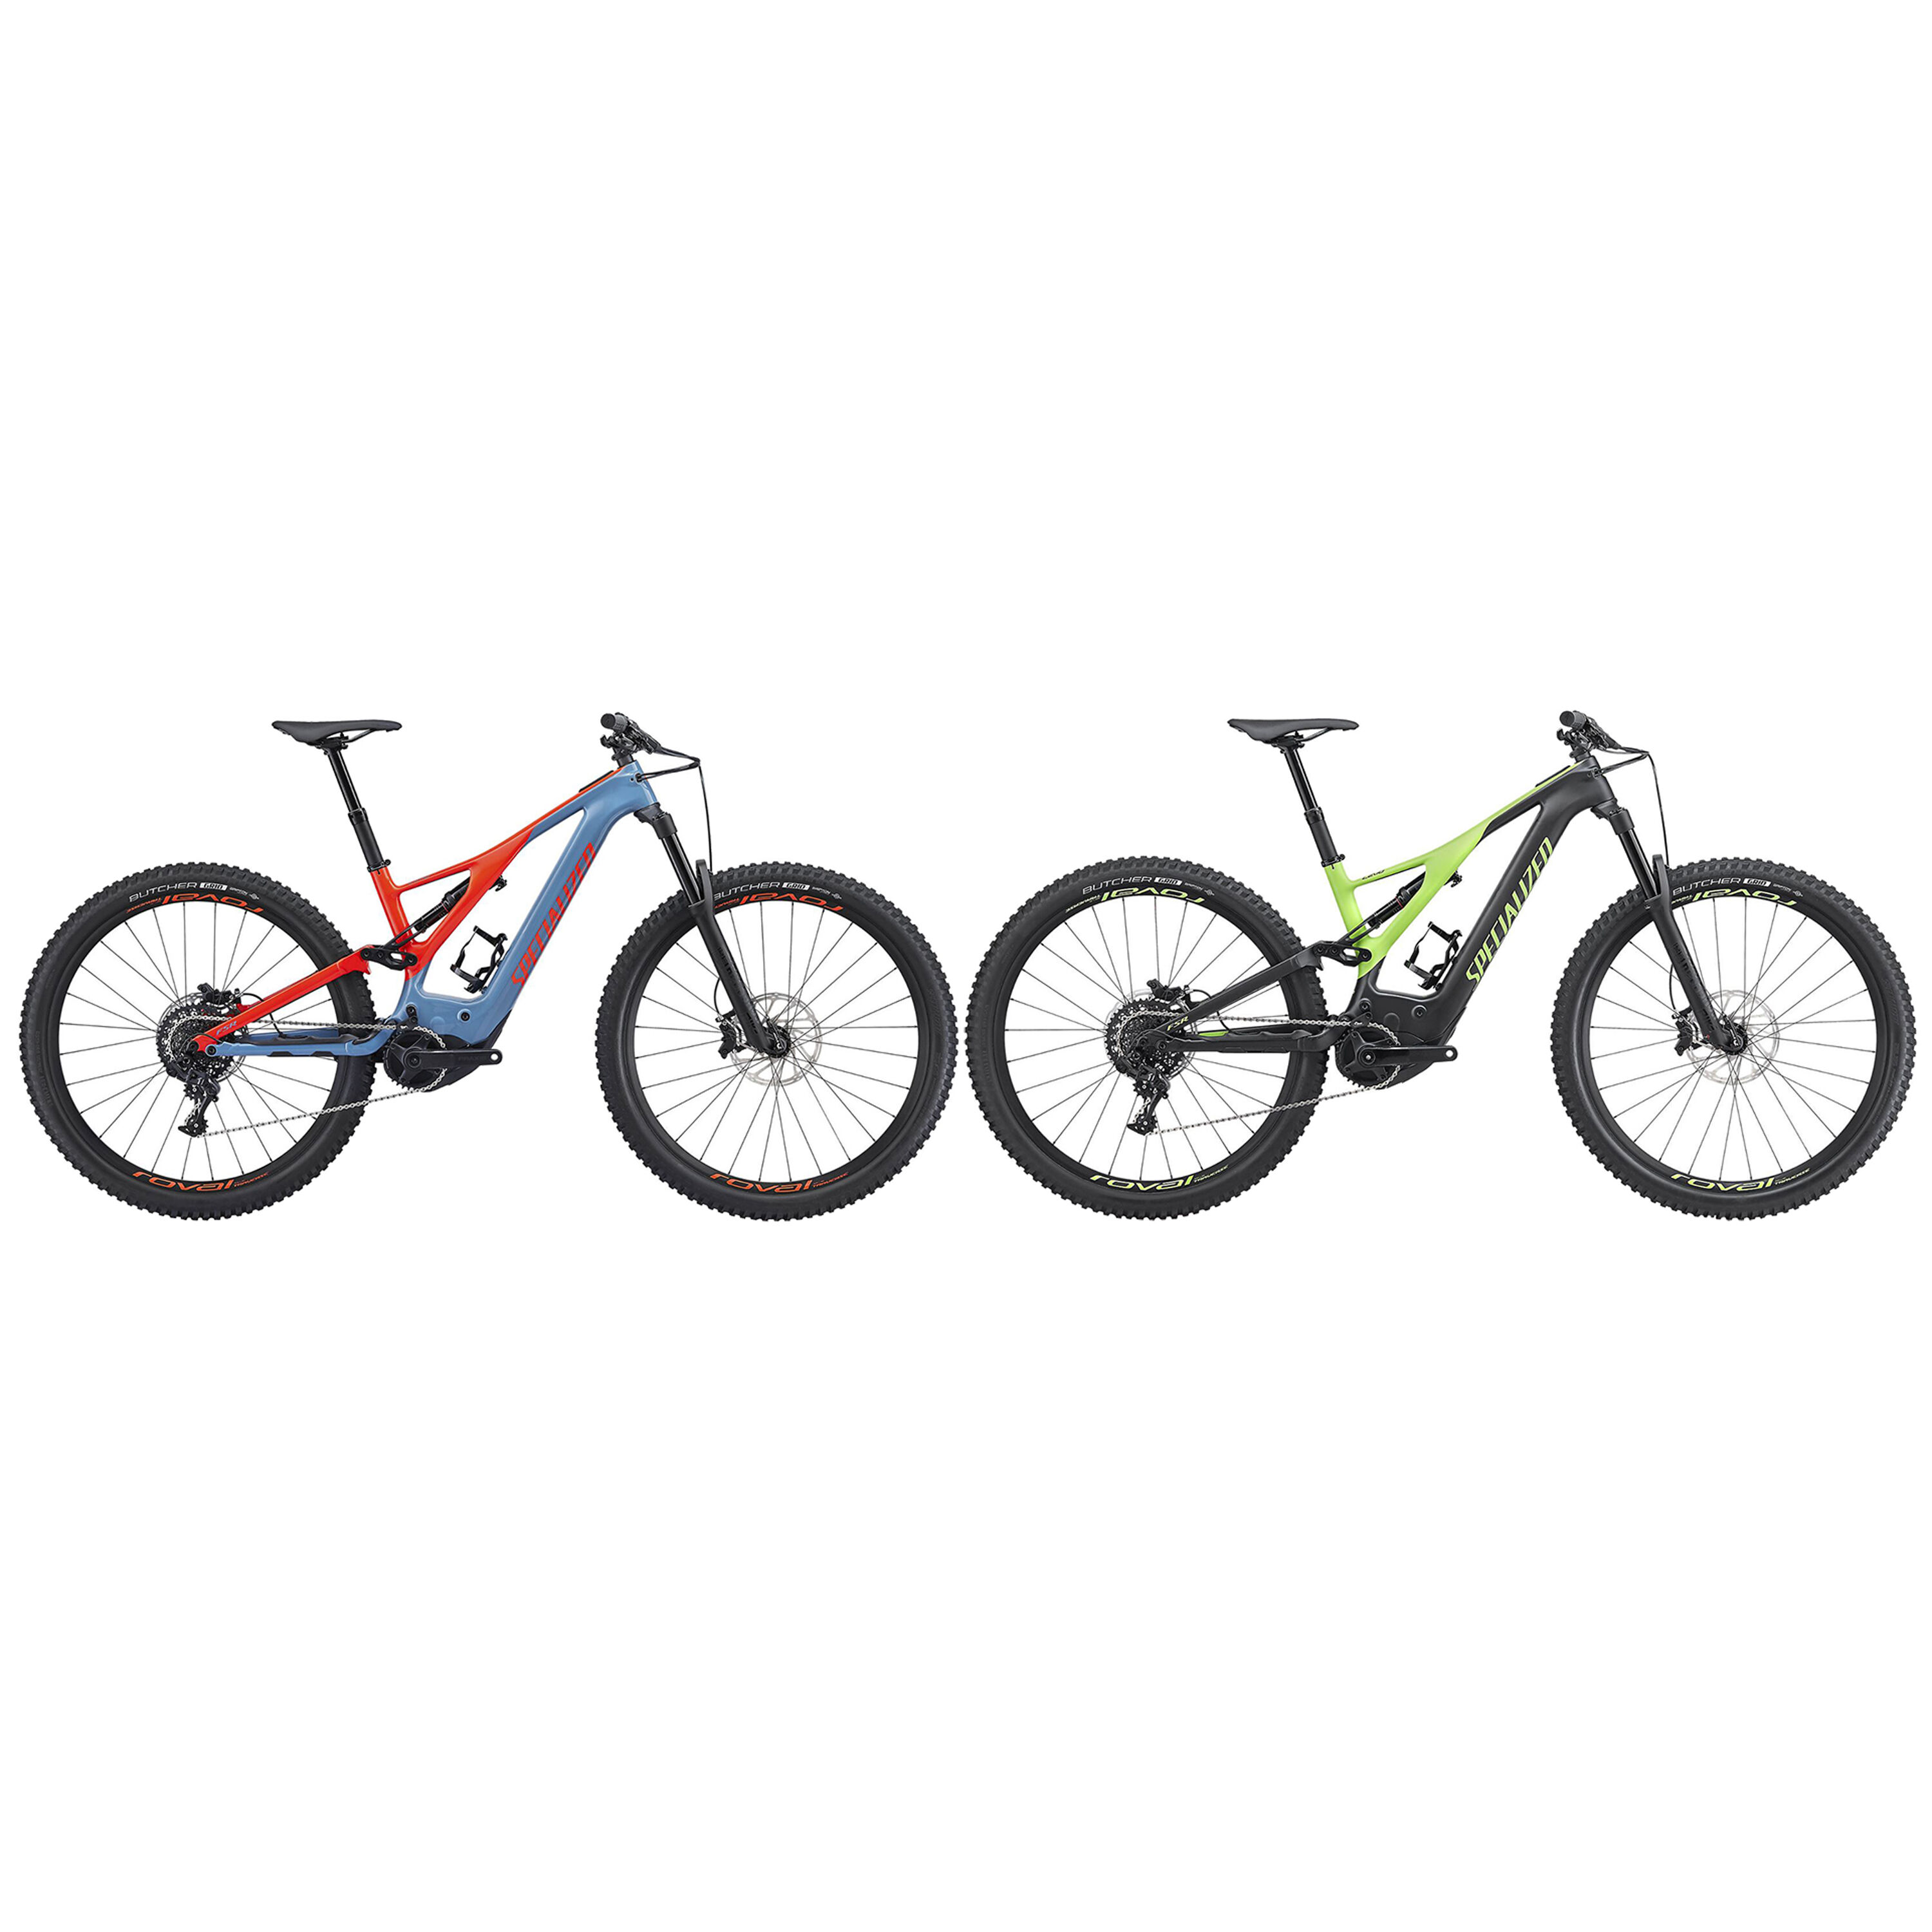 Specialized Men's Turbo Levo Expert bicycle 2019